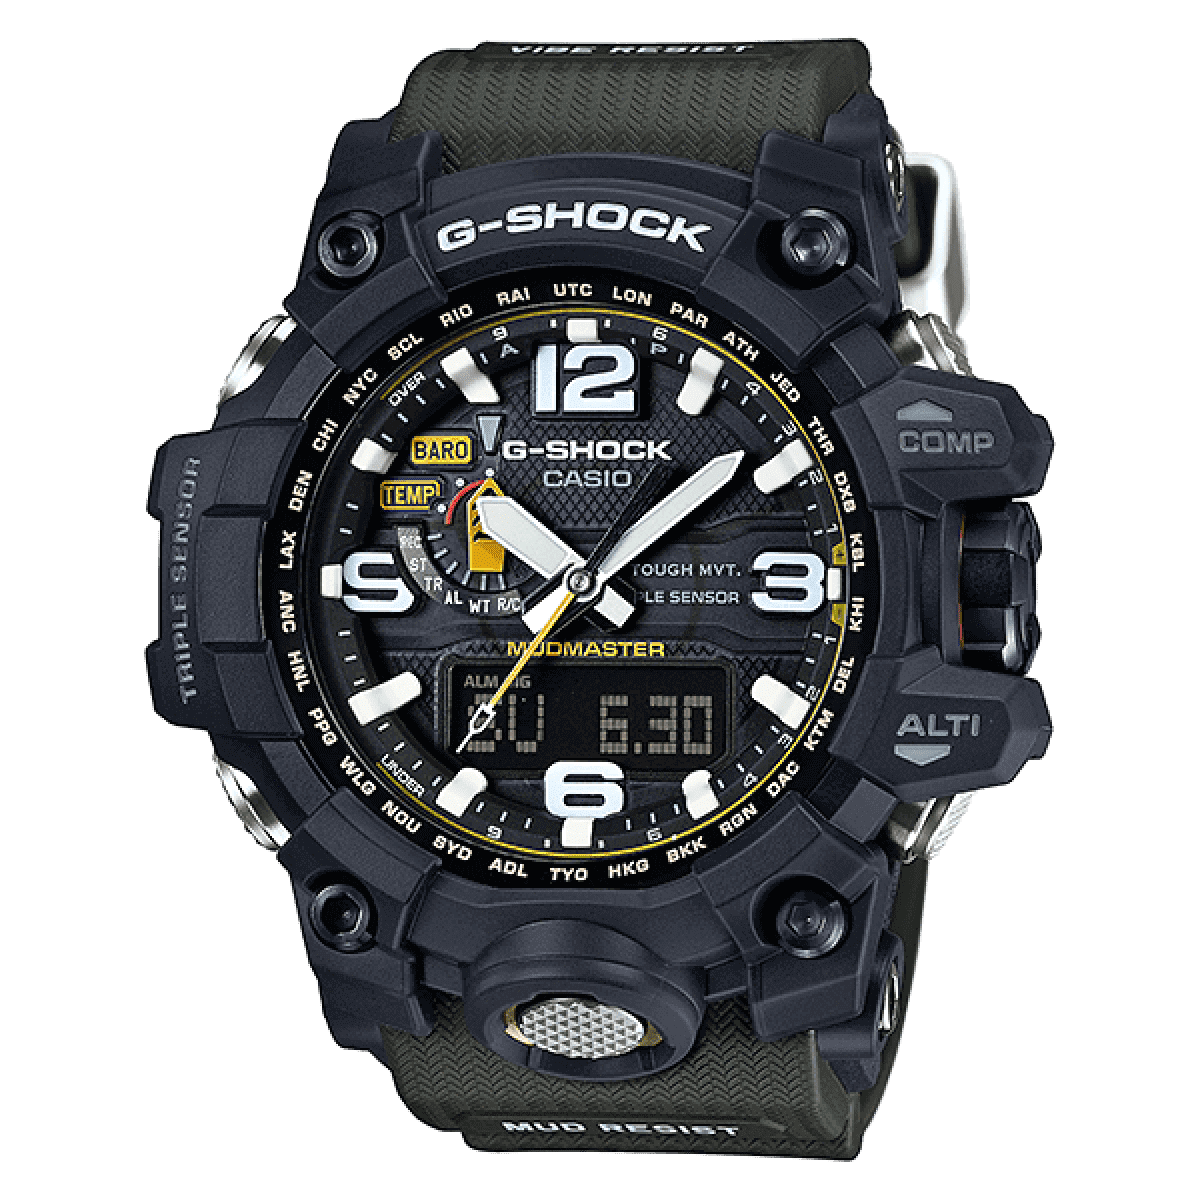 b9c029cda05 Land 11 watches. Classic. Classic 85 watches. Limited Edition. Limited  Edition 92 watches. G-Shock Newsletter